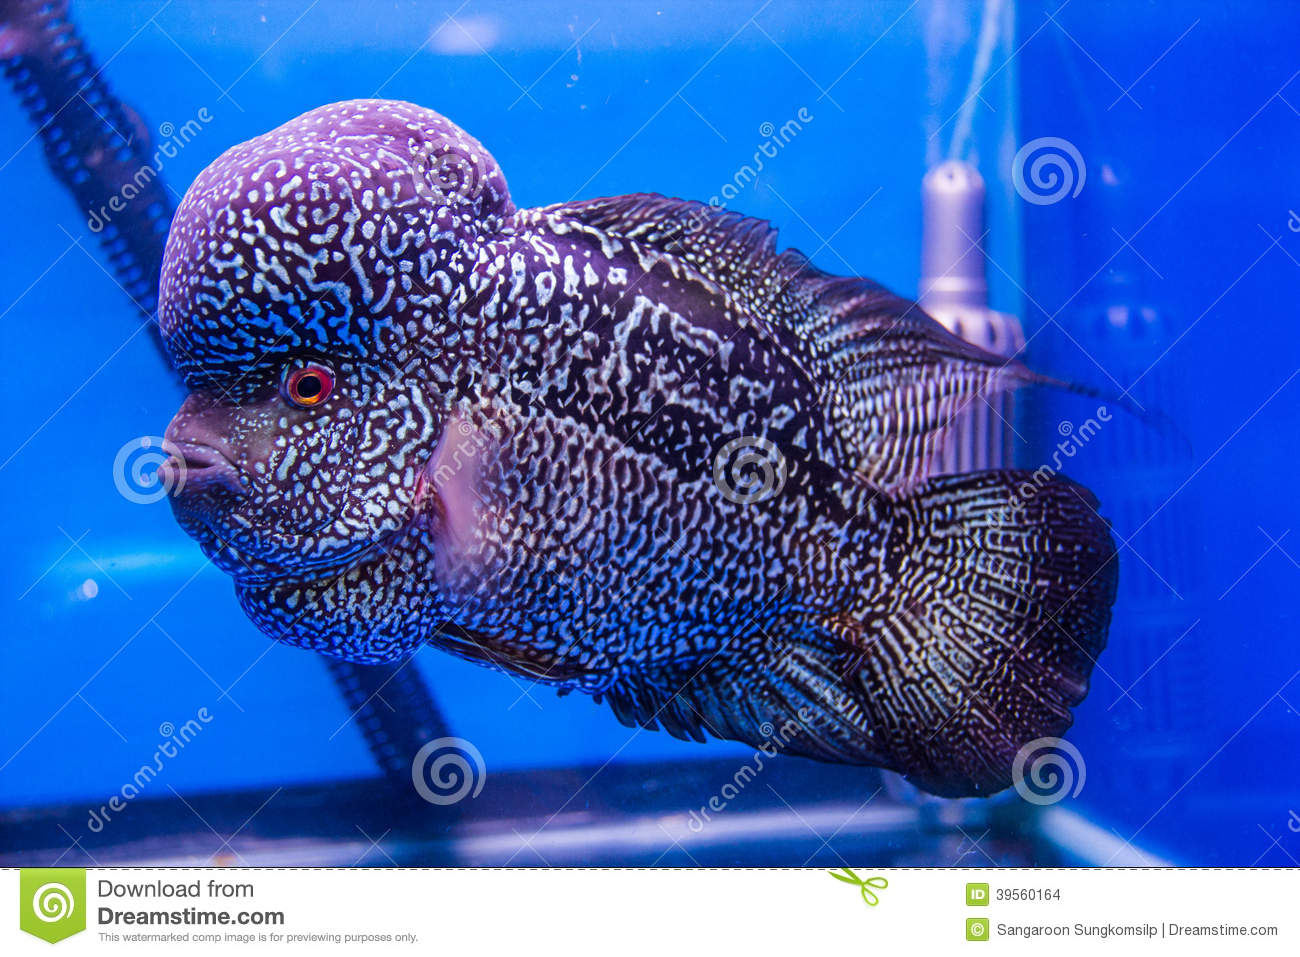 Flowerhorn cichlid fish stock photo image of ornate for Flower horn fish price